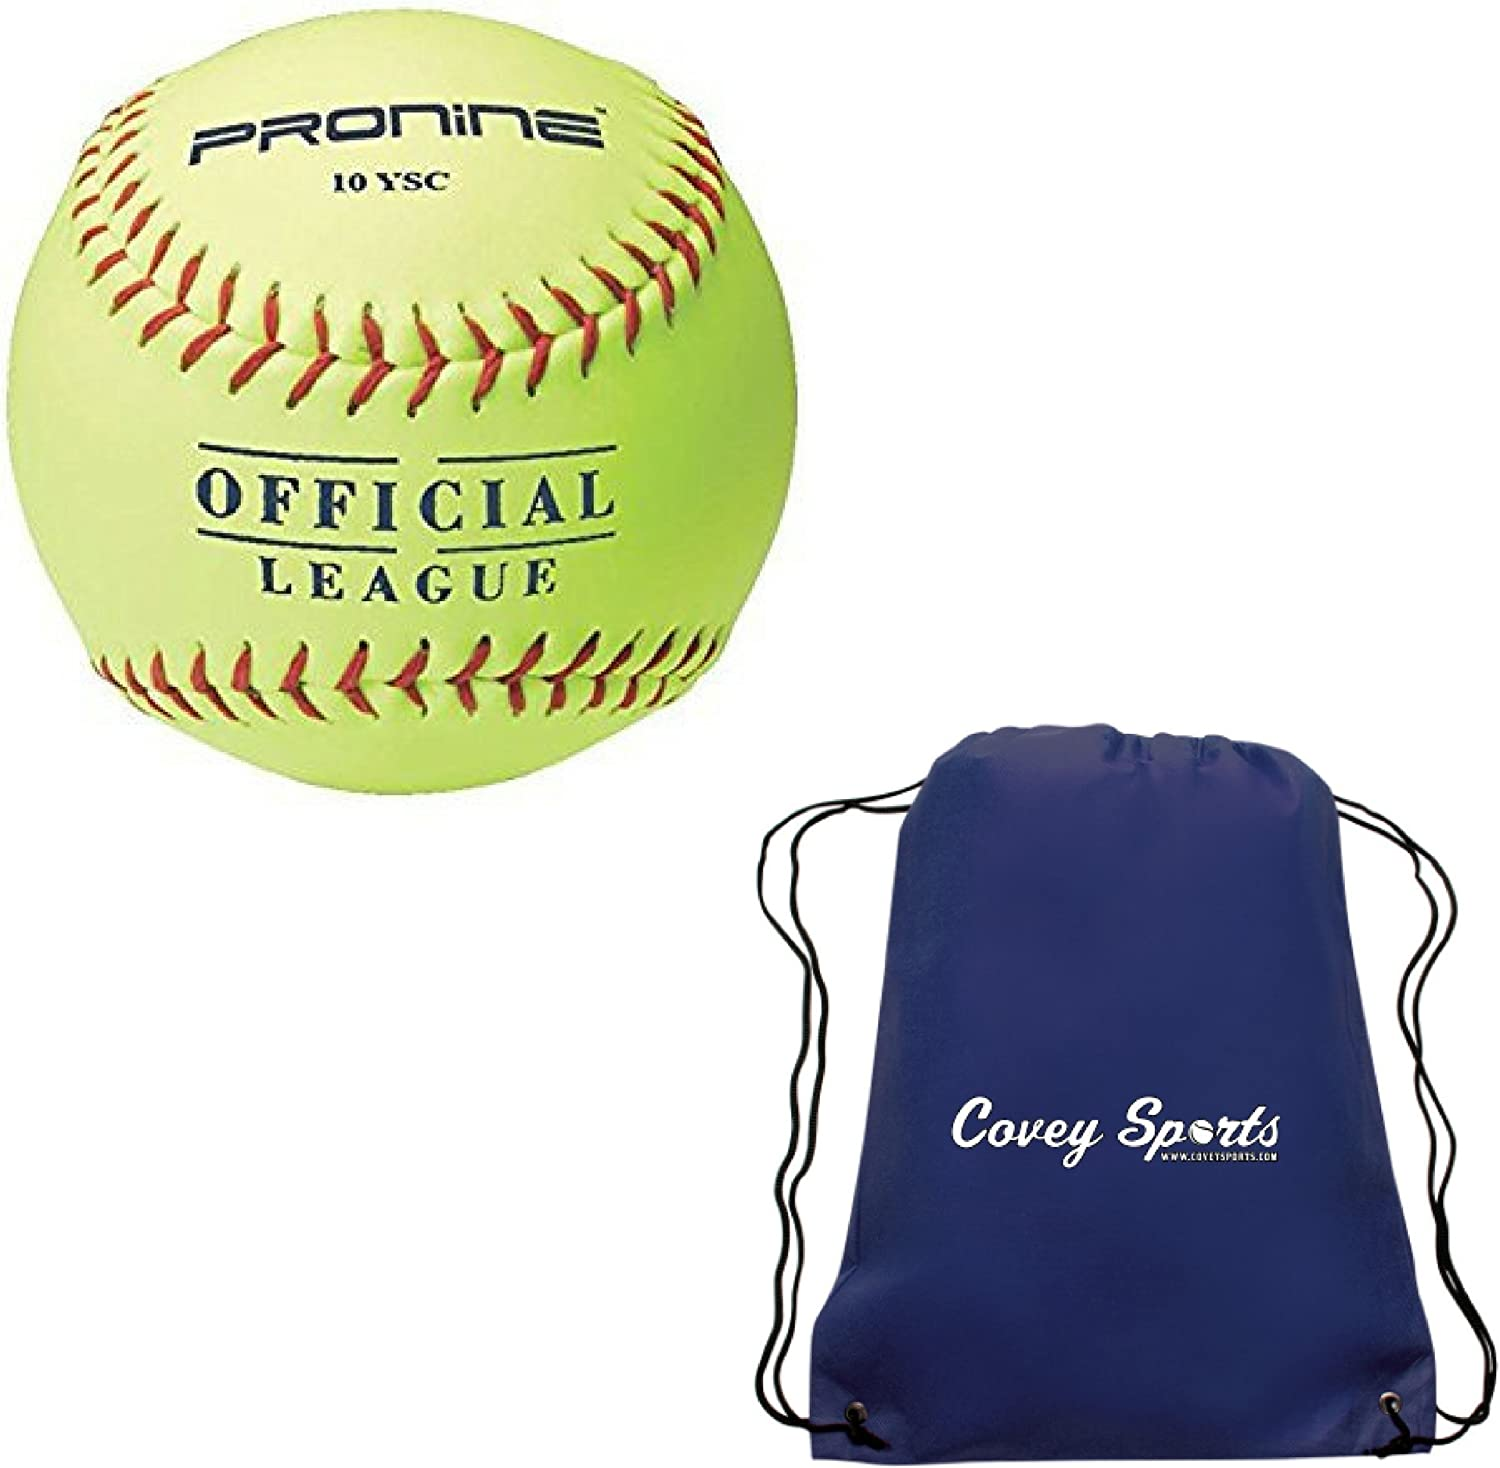 ProNine 10 Inch SoftCore Softballs for 8U 6U Girls (3Pack and 6Pack) Bundled with Covey Sports Bag